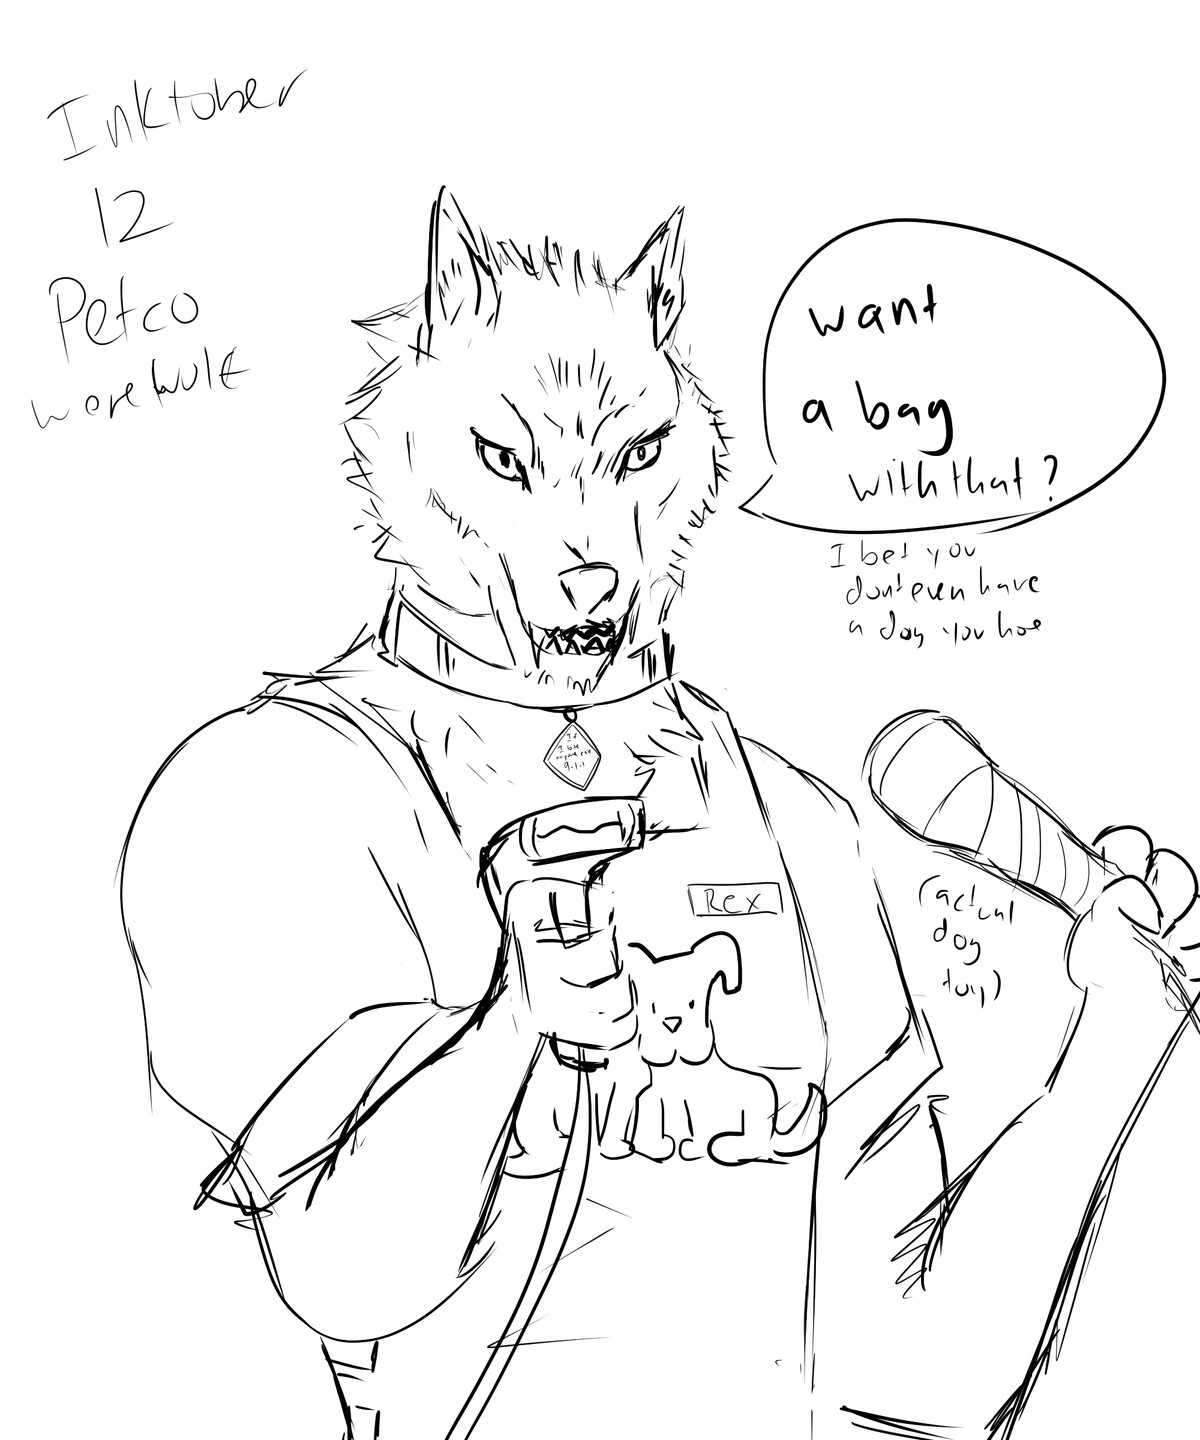 Inktober 12: Petco werewolf. join list: GBArt (261 subs)Mention History Alotta dog toys look like people would shove up their butts.. Take your rawhide raw